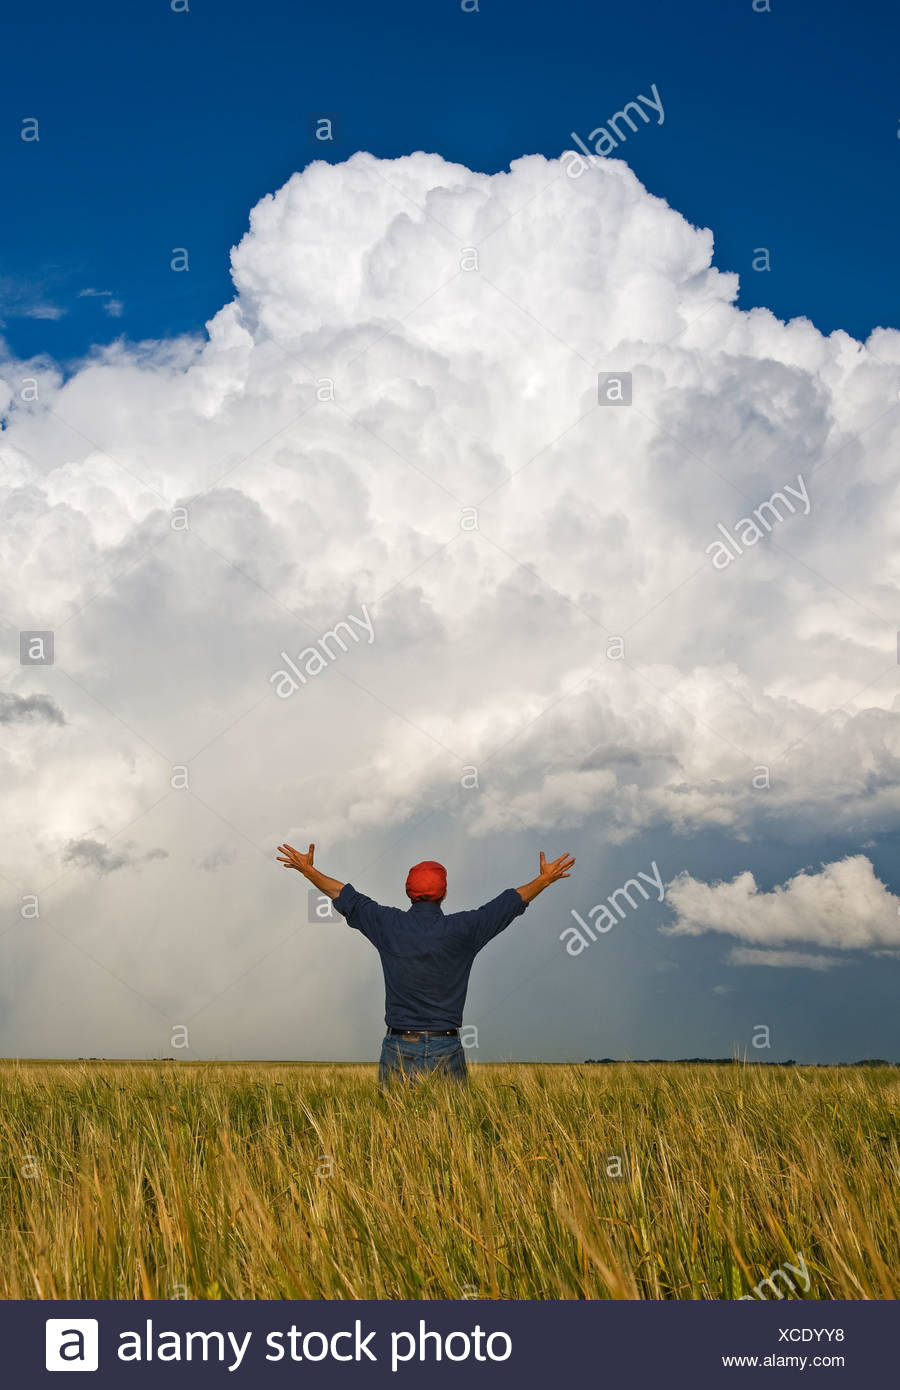 A man looks out over a barley field with a cumulonimbus supercell cloud, Bromhead, Saskatchewan, Canada - Stock Image